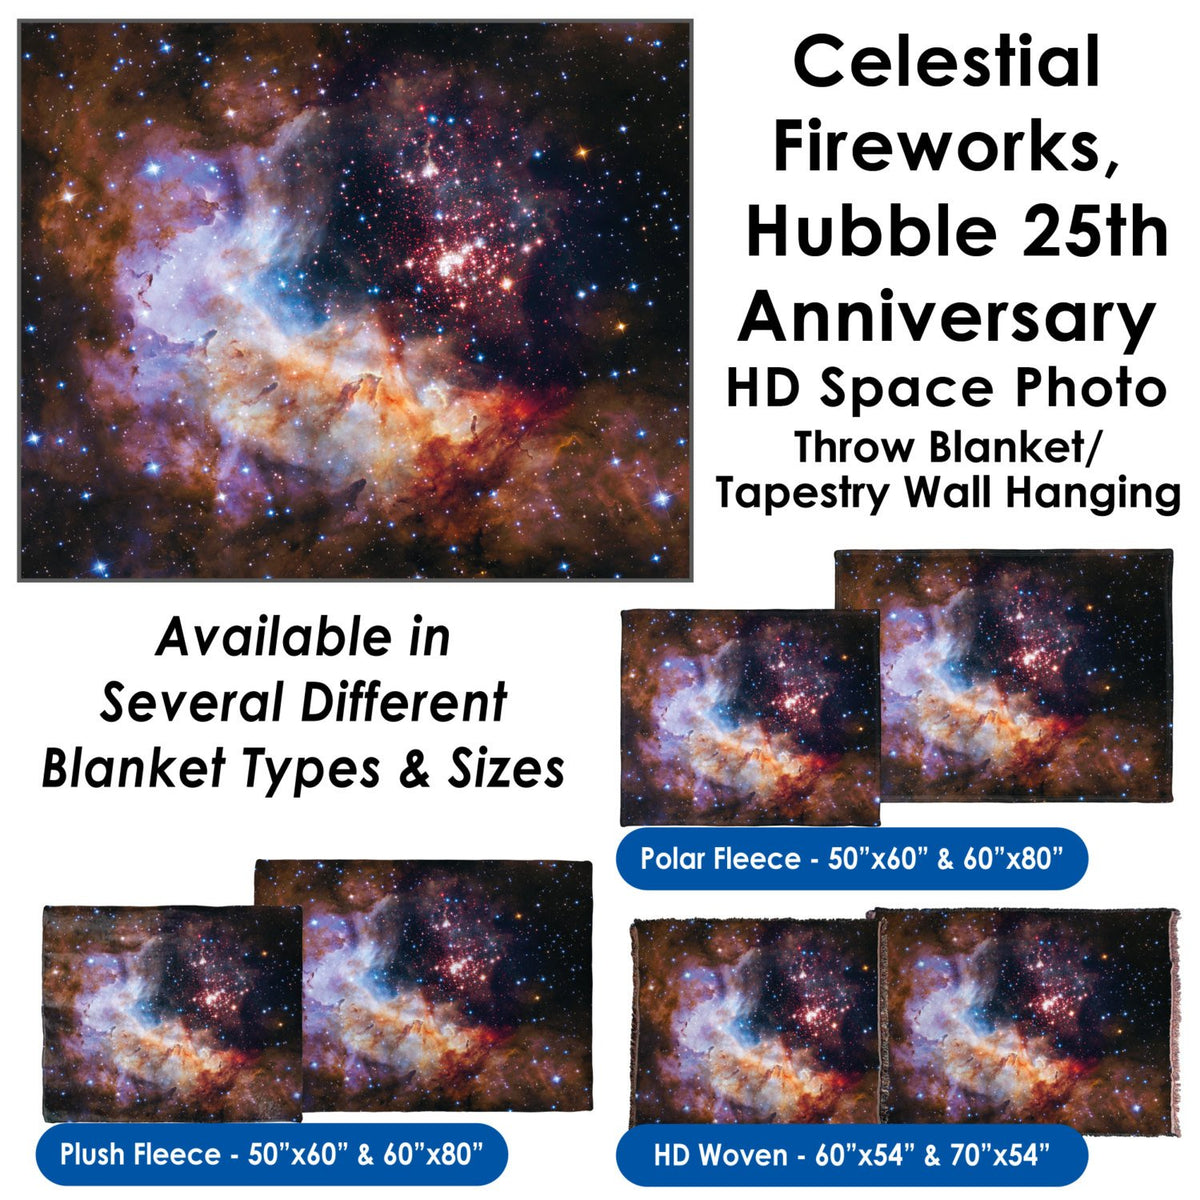 Celestial Fireworks, Hubble 25th Anniversary HD Space Photo - Throw Blanket / Tapestry Wall Hanging